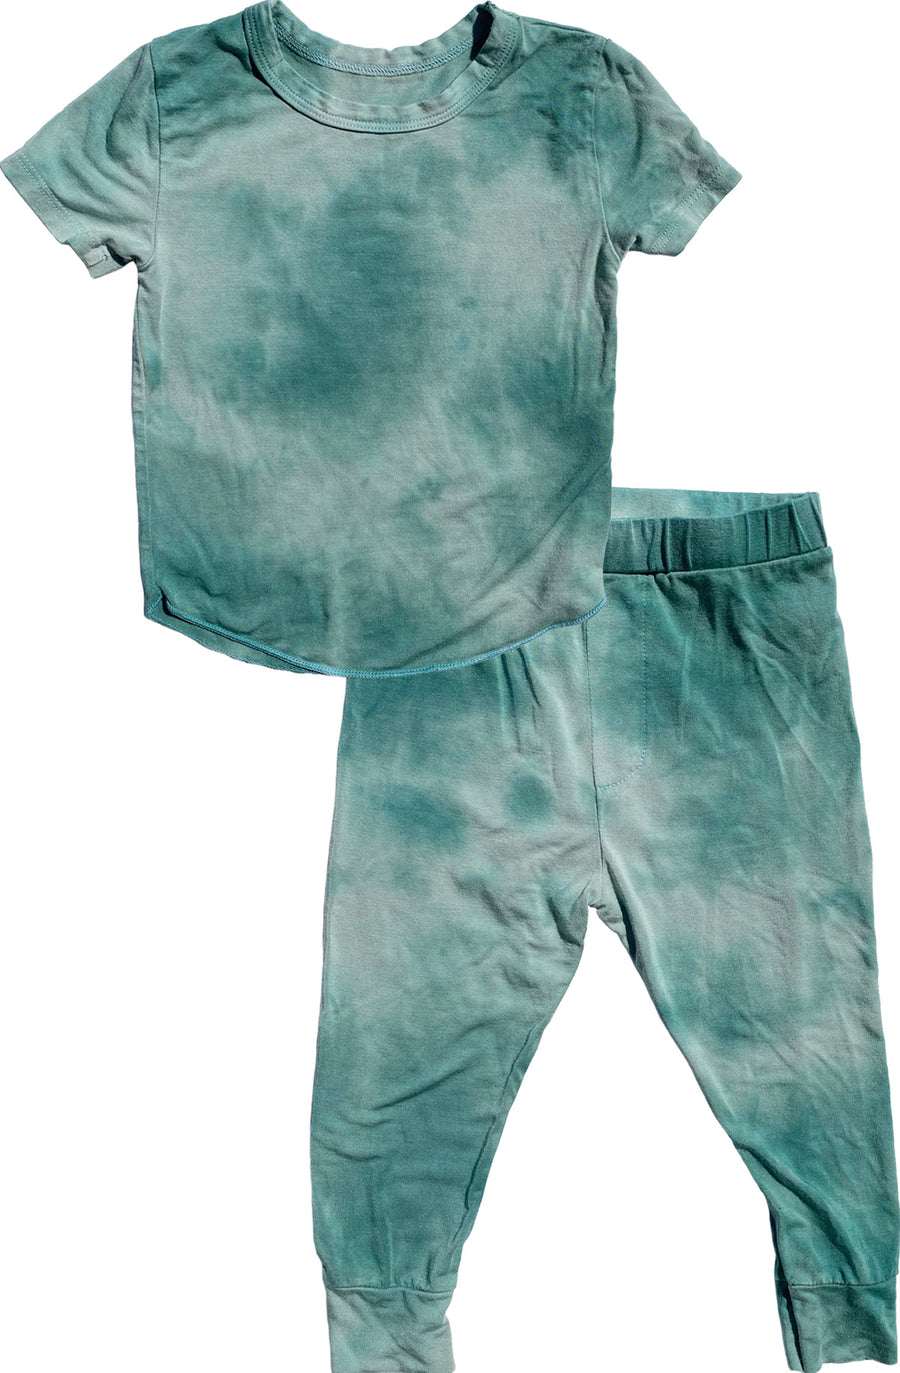 Rebel Tie Dye Green Short Sleeve Base Layer Set